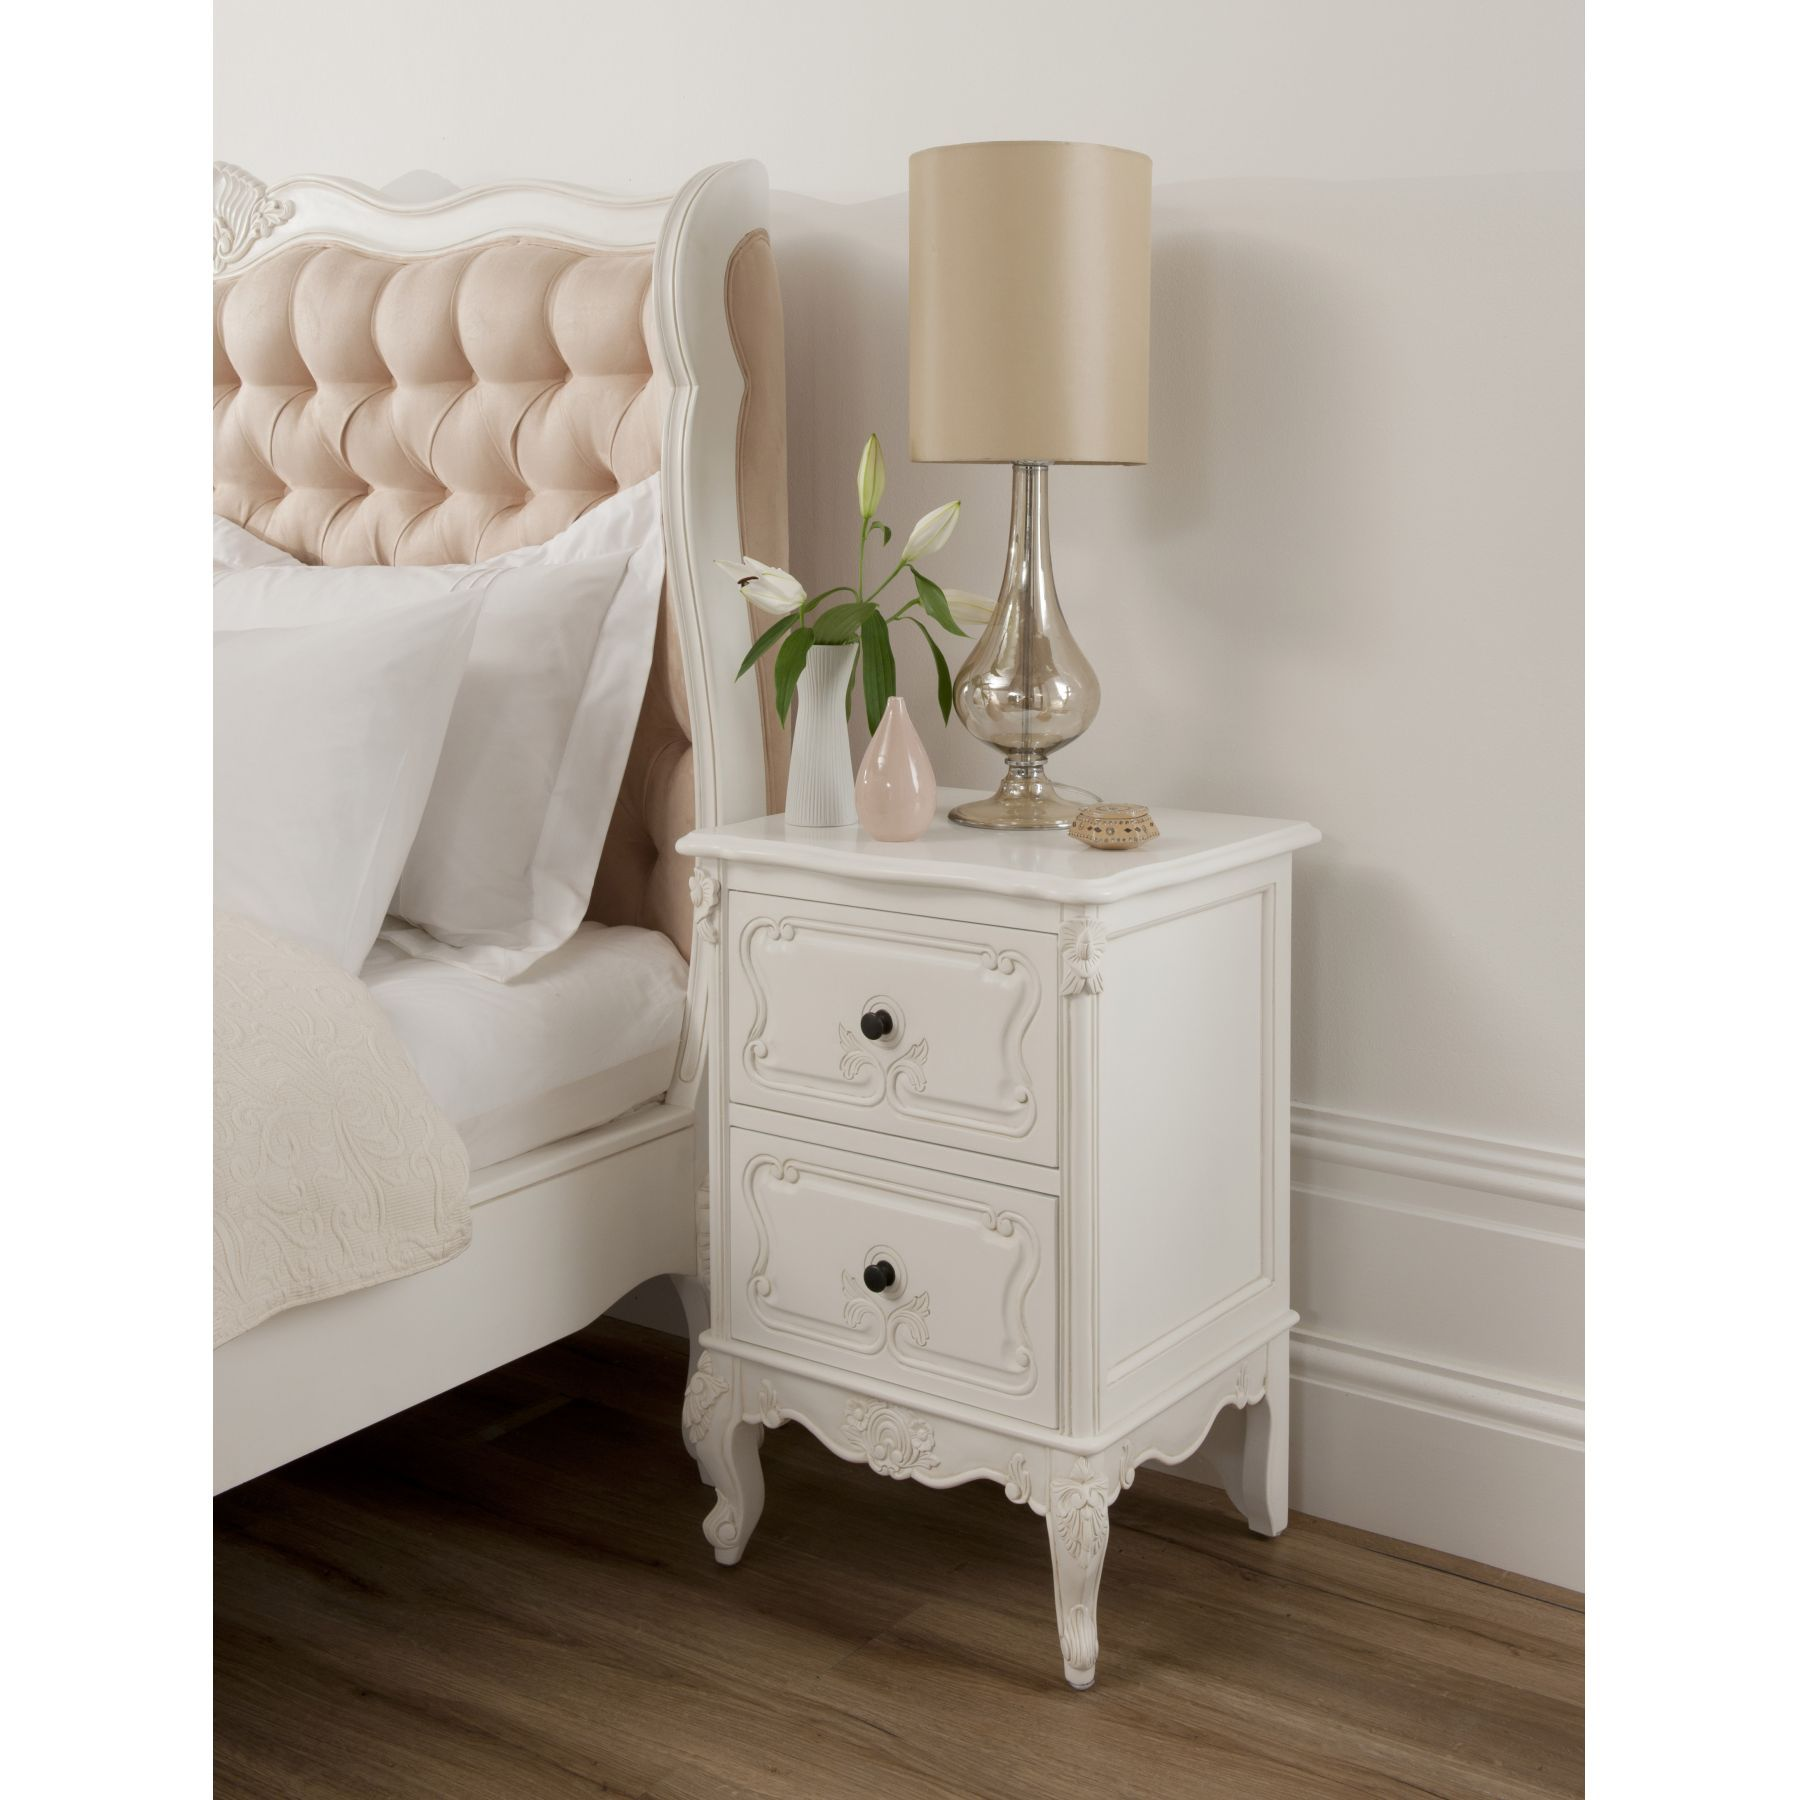 French bedside tables can be the best idea for a classic and